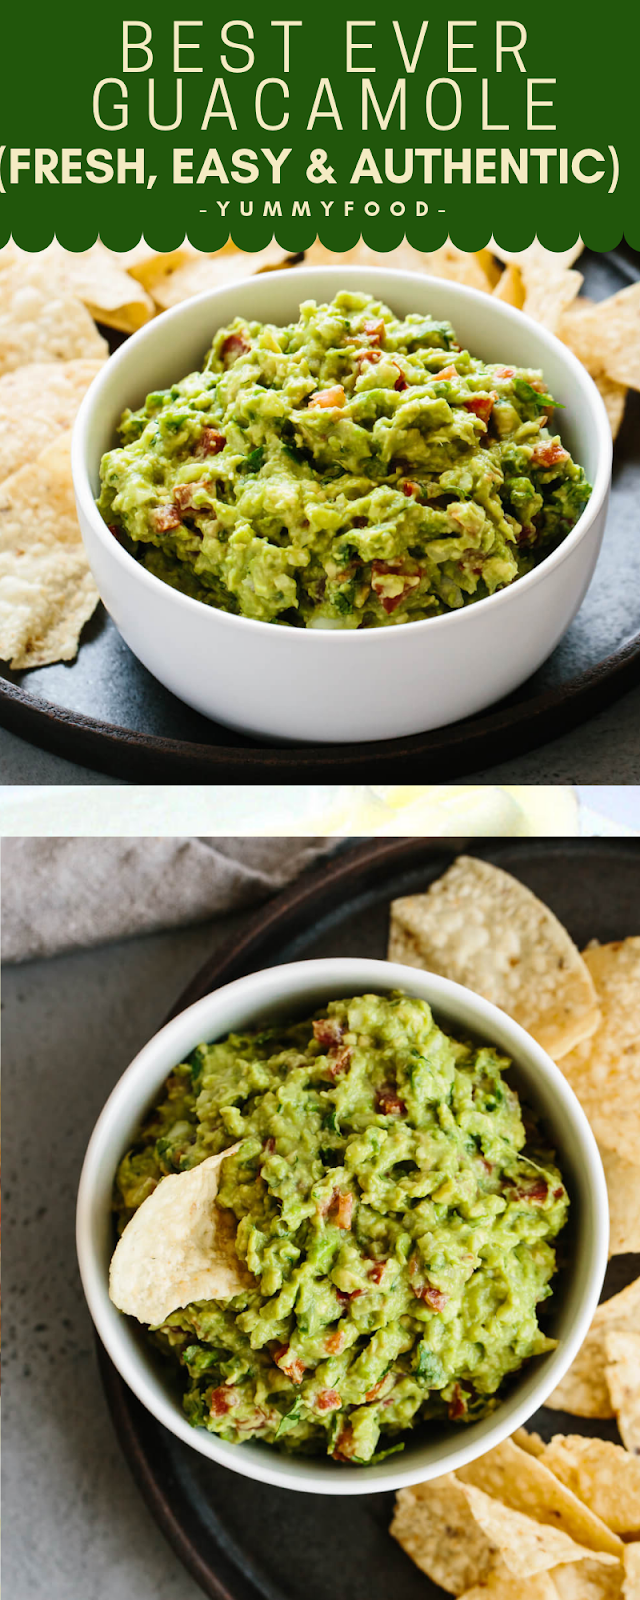 BEST EVER GUACAMOLE (FRESH, EASY & AUTHENTIC)